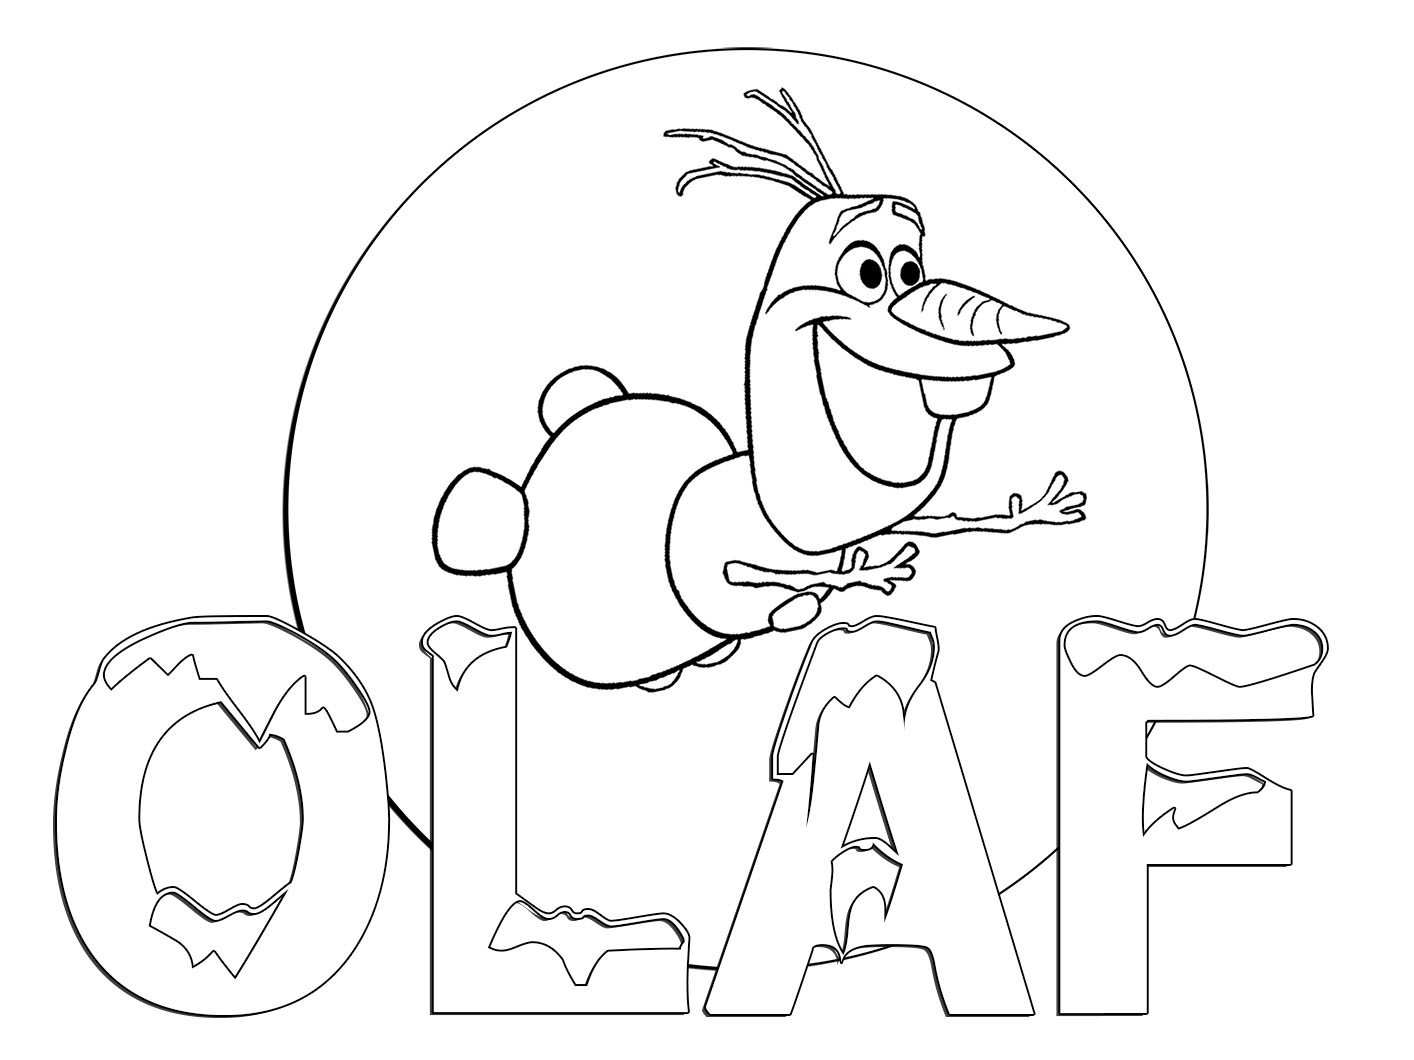 Frozen Coloring Pages Olaf Elsa For Download Of Coloringooksook Kids Free